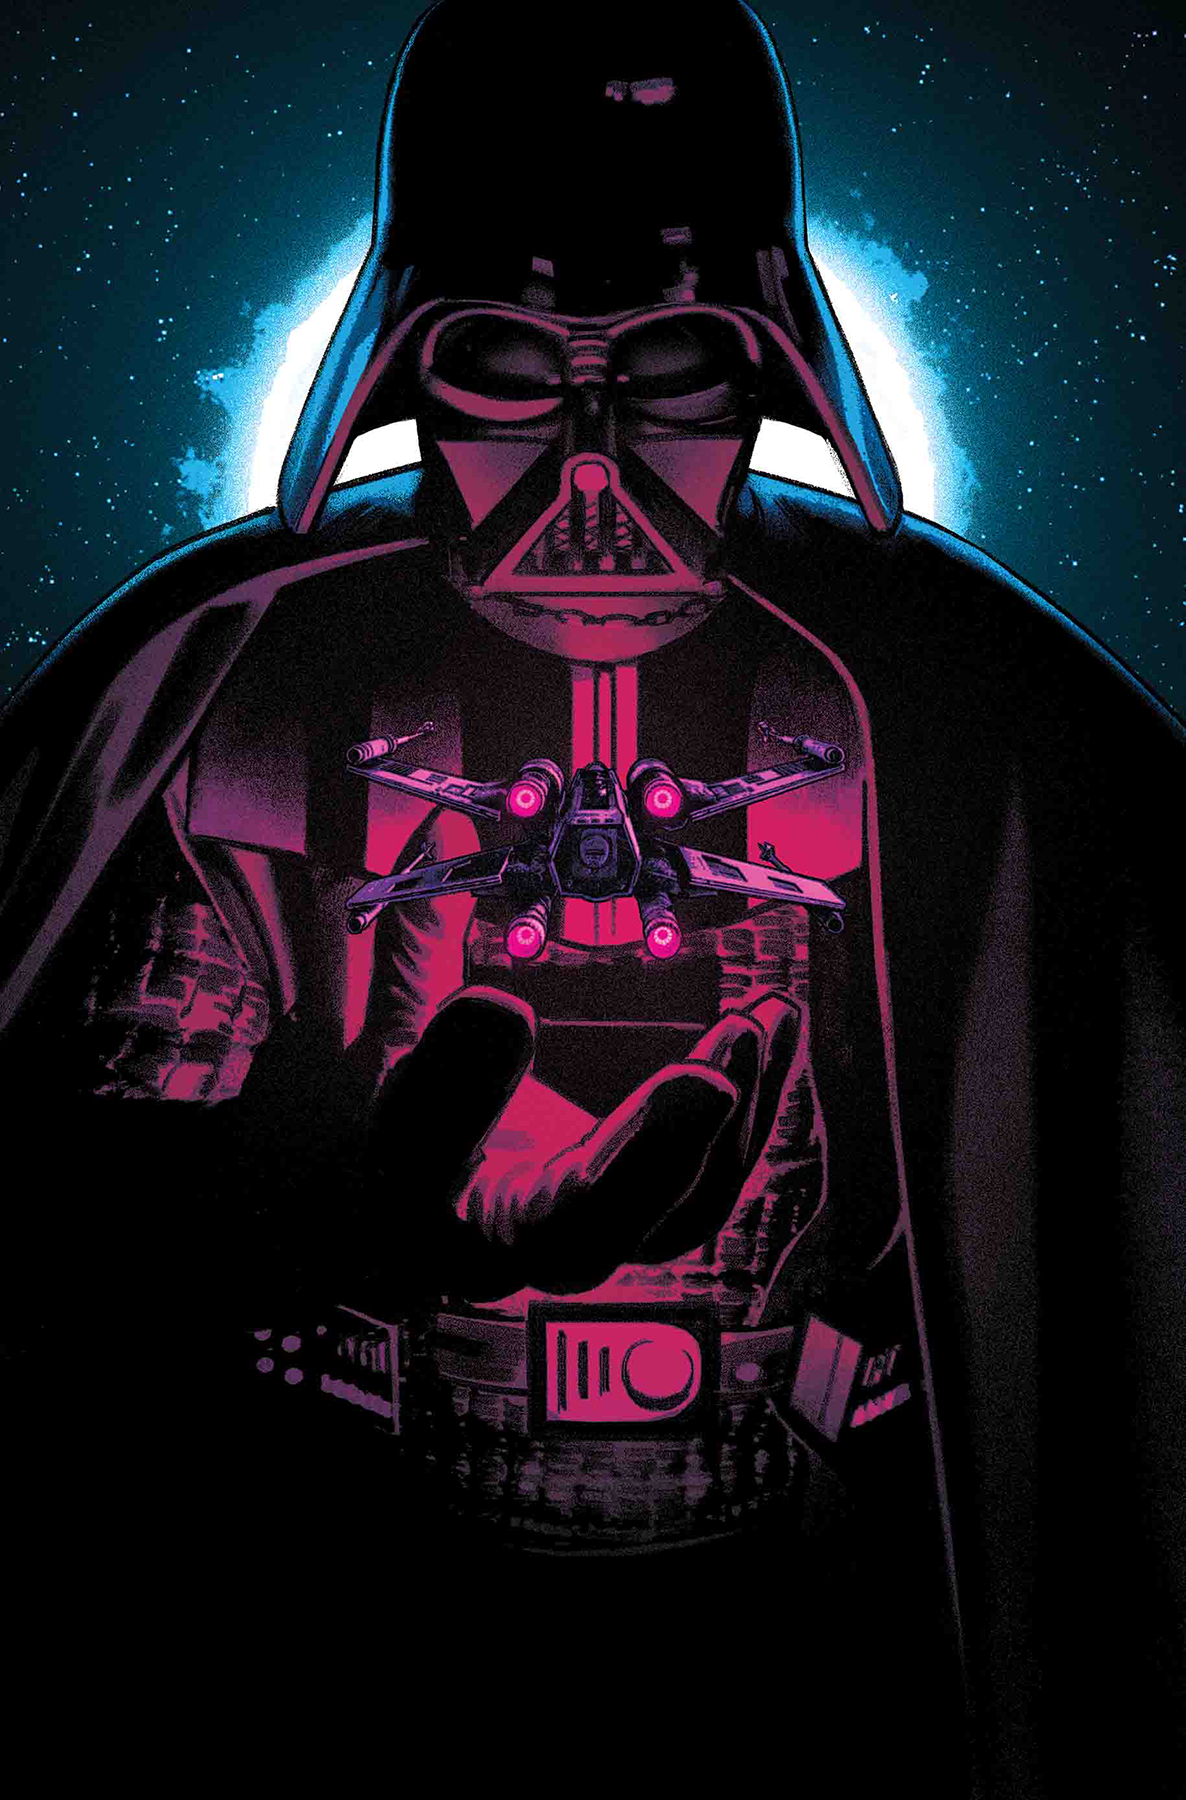 STAR WARS VADER DARK VISIONS #4 (OF 5)